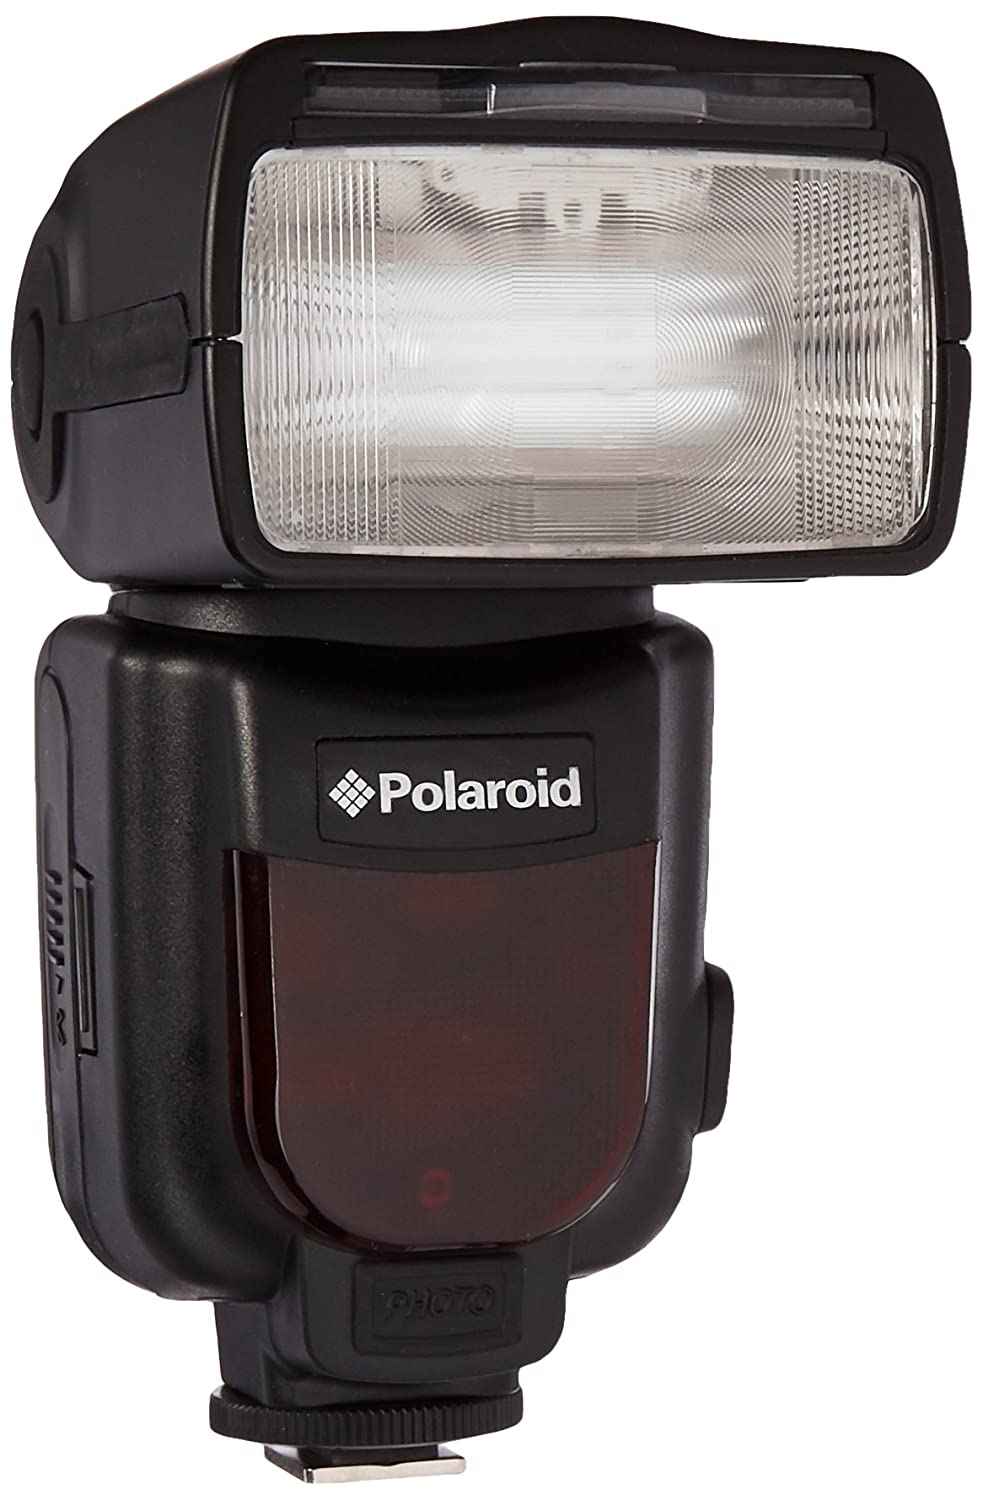 Polaroid Professional Hot Shoe Flash For All Nikon DSLR Cameras, Wireless & TTL With LCD Display PL190N